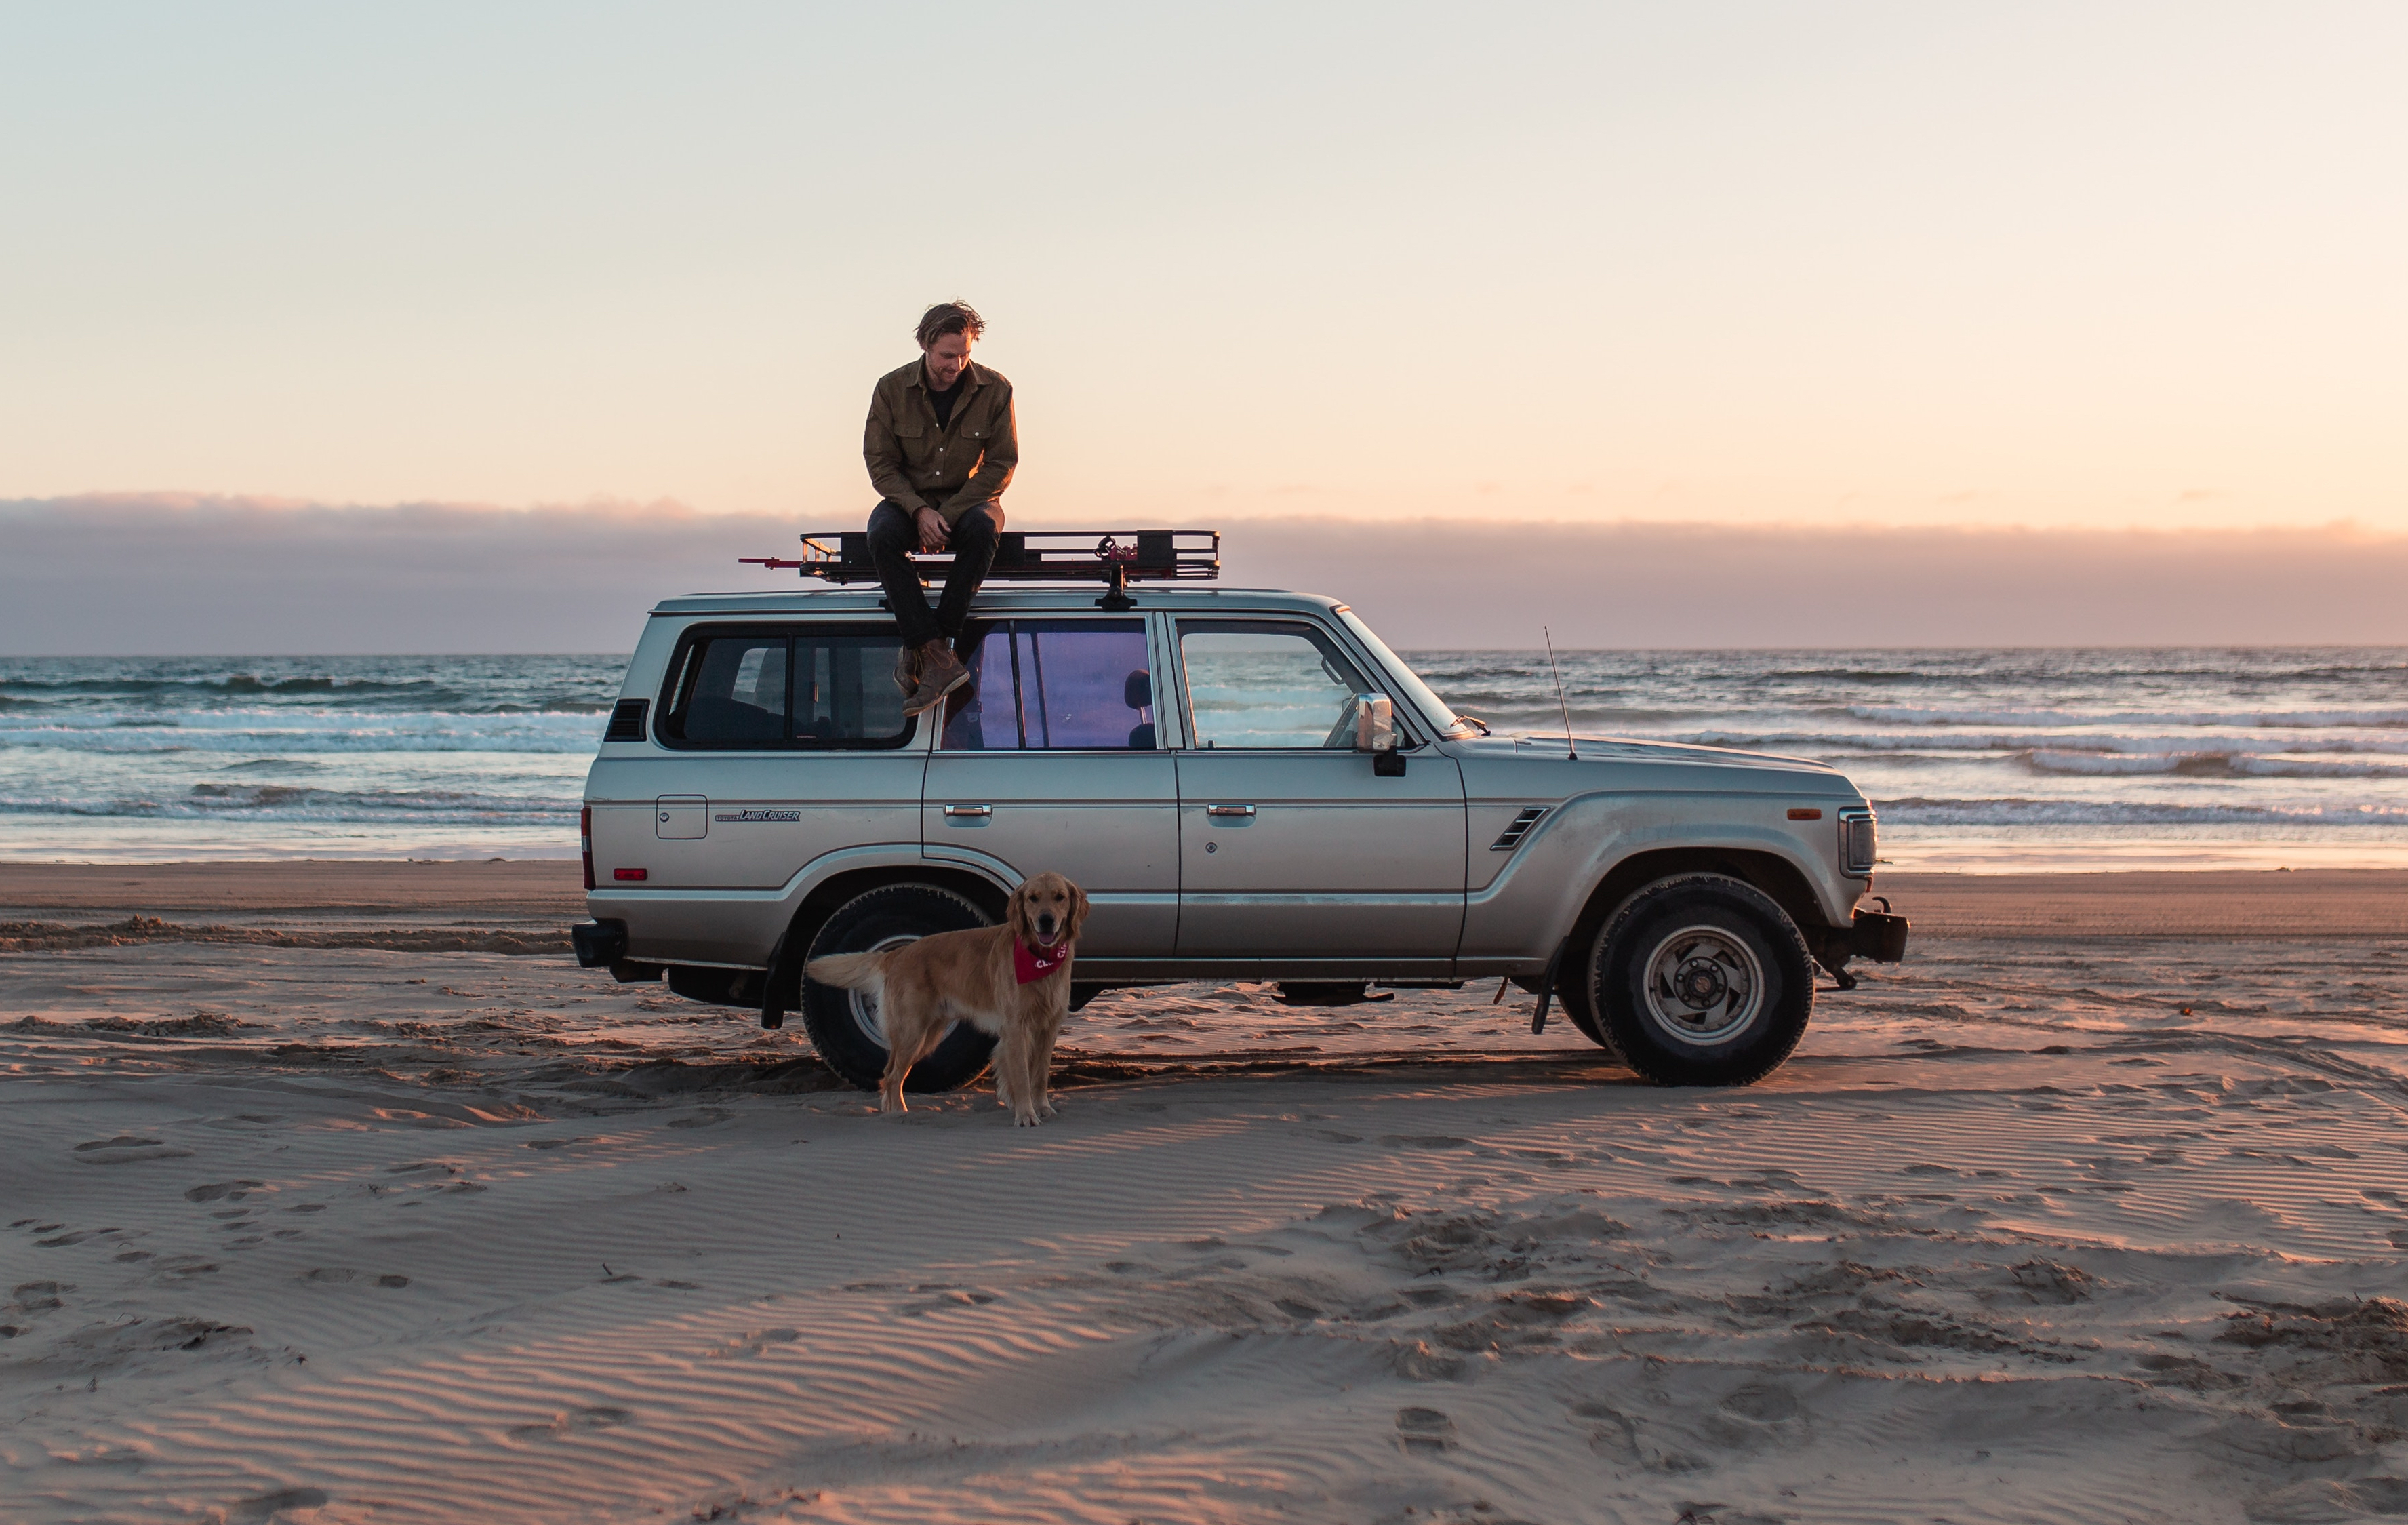 Car Insurance In California: What You Need To Know